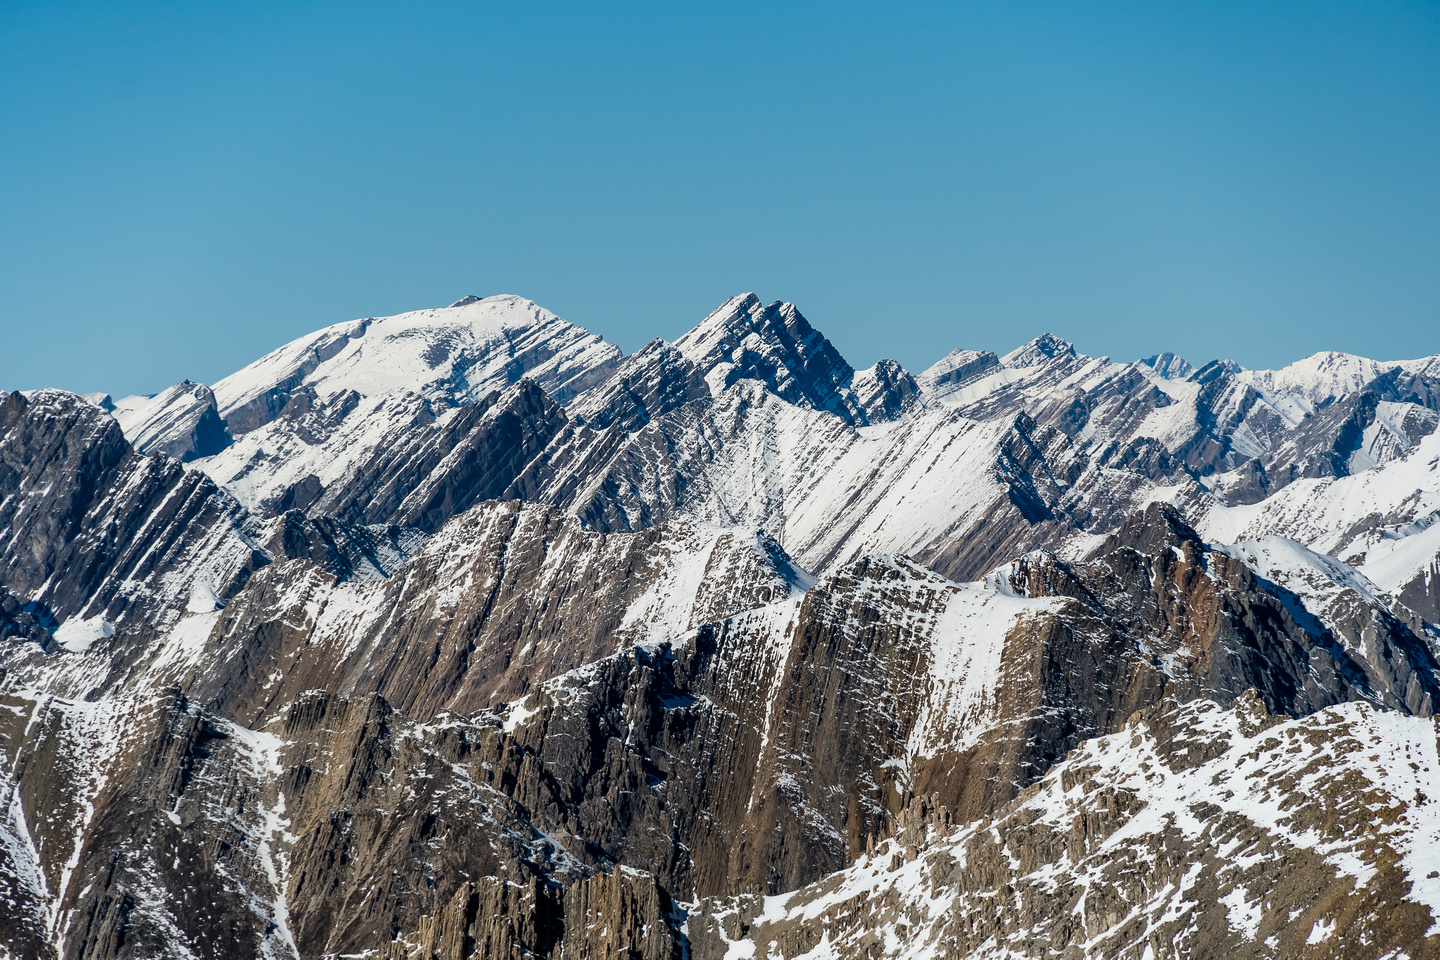 Bonnet Peak is just visible over the rounded foreground summit at left of center. Noetic to its R.